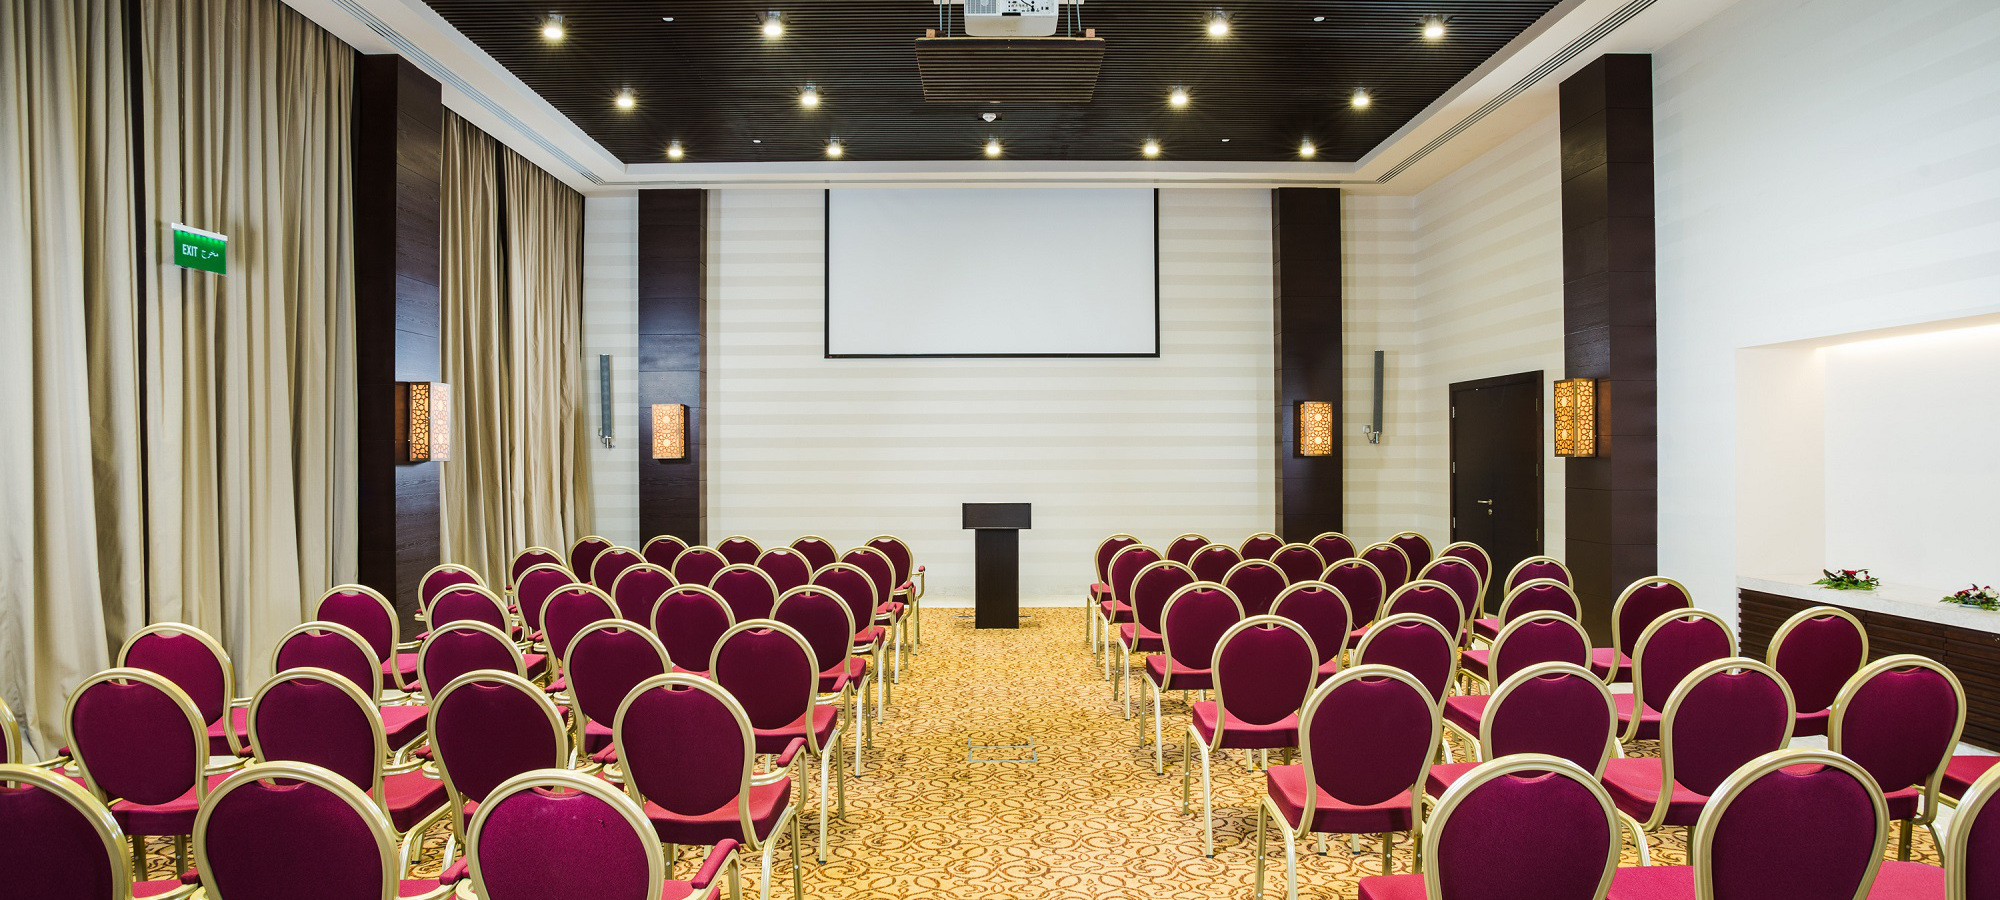 conference room with projector in fanar hotel at hawana salalah